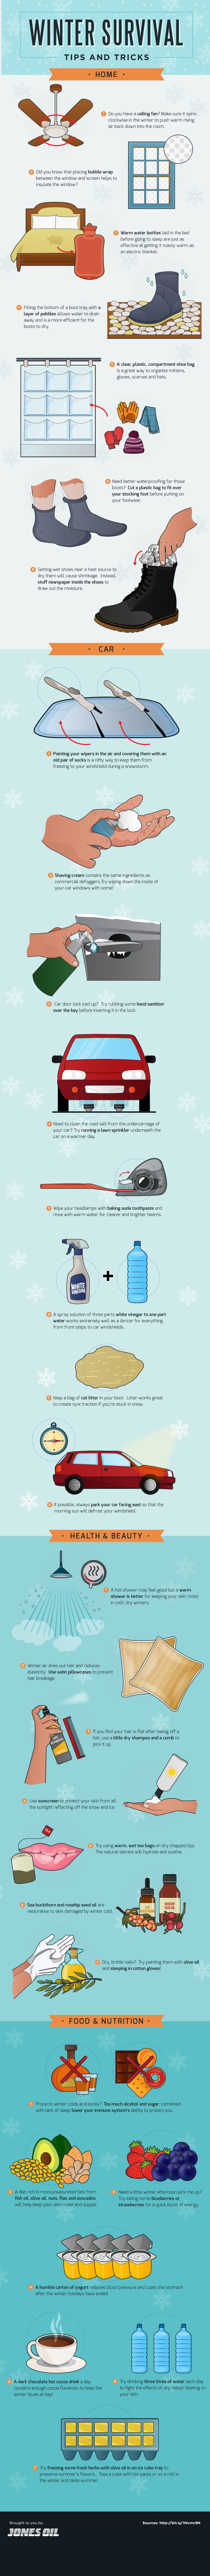 Winter Survival Tips and Tricks